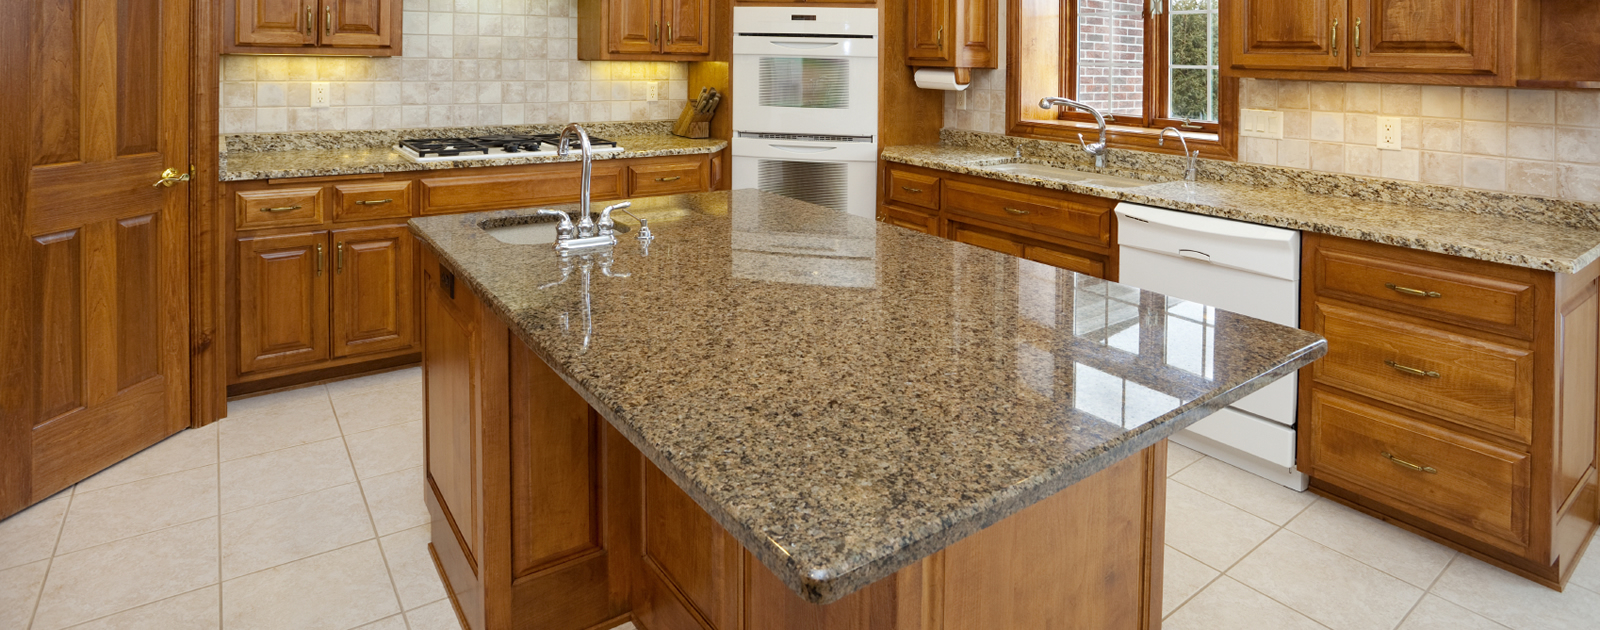 Twin Cities Top Rated Discount Granite Countertop Installation Granite Kitchen Countertops